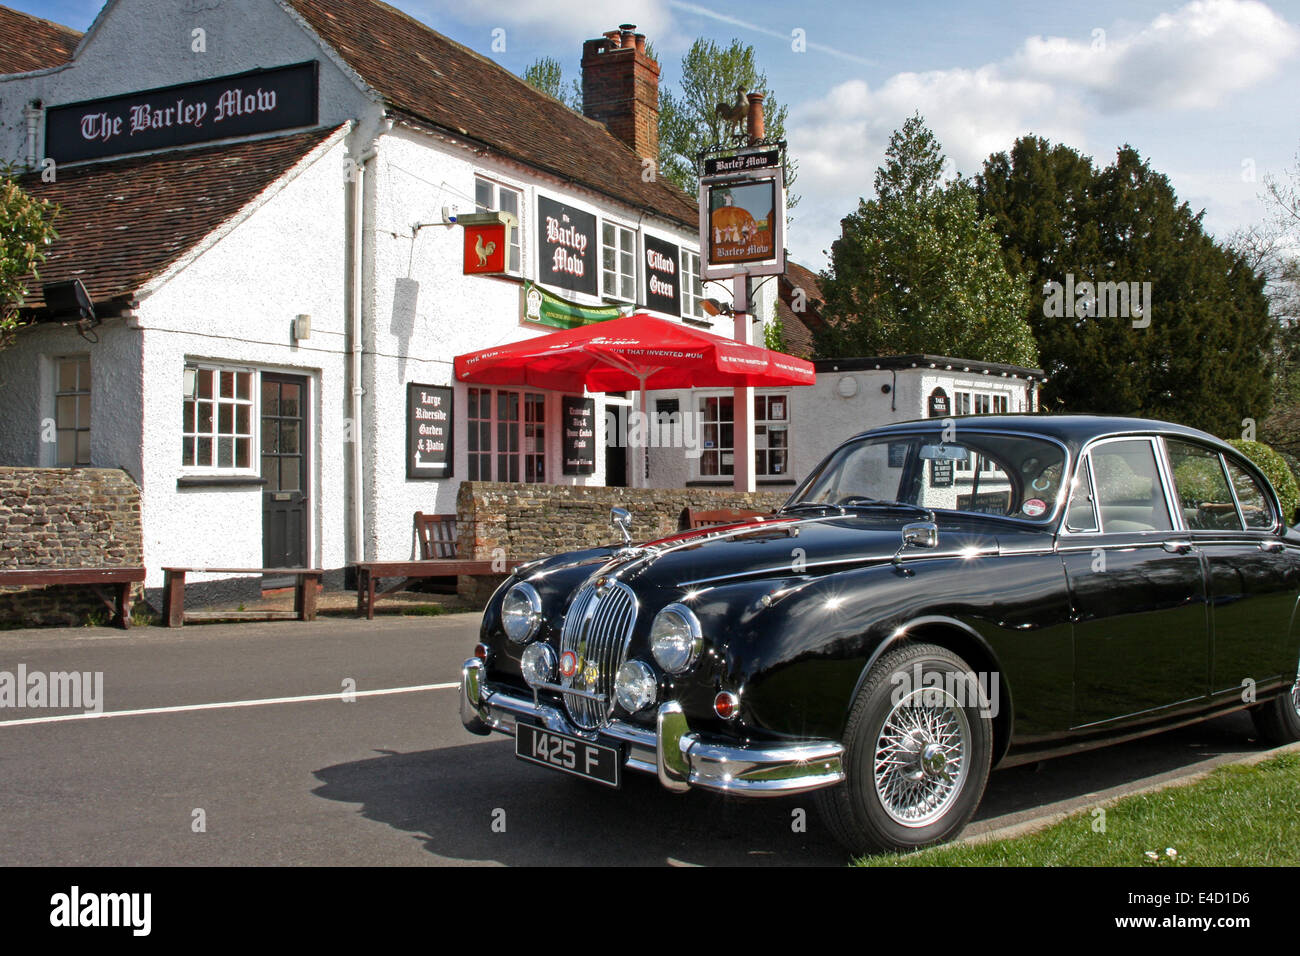 Classic Jaguar Mk 2 saloon parked at the Barley Mow Pub in Tilford, Surrey, Farnham, United Kingdom. - Stock Image